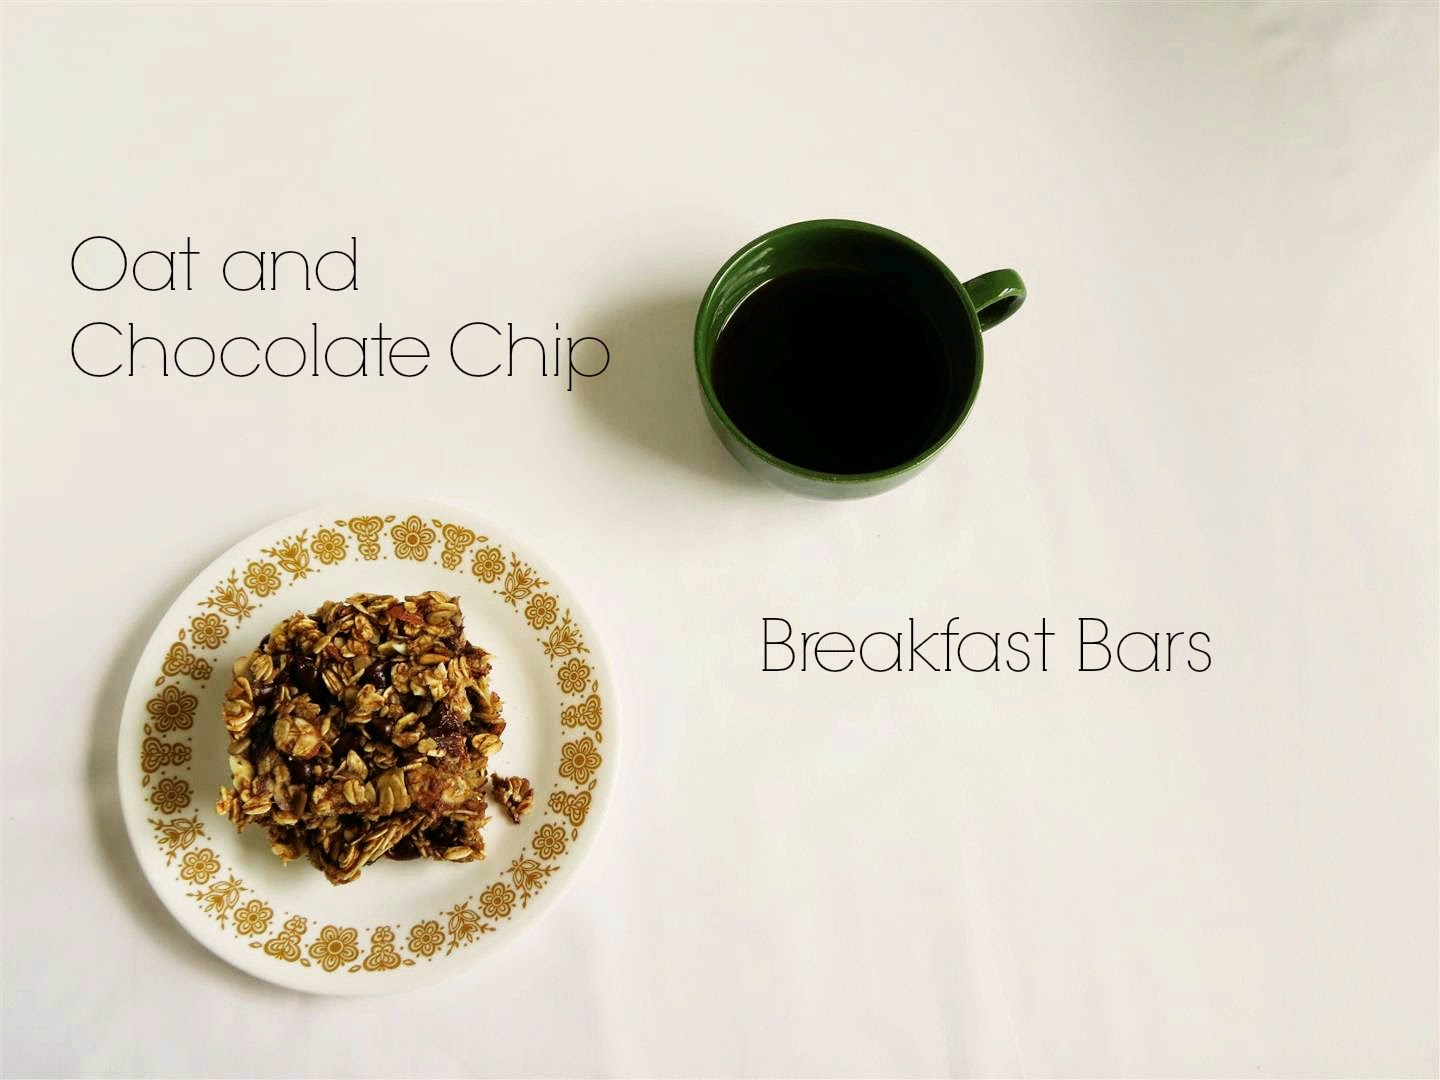 Black Spruce Hound: Oat and Chocolate Chip Breakfast Bars